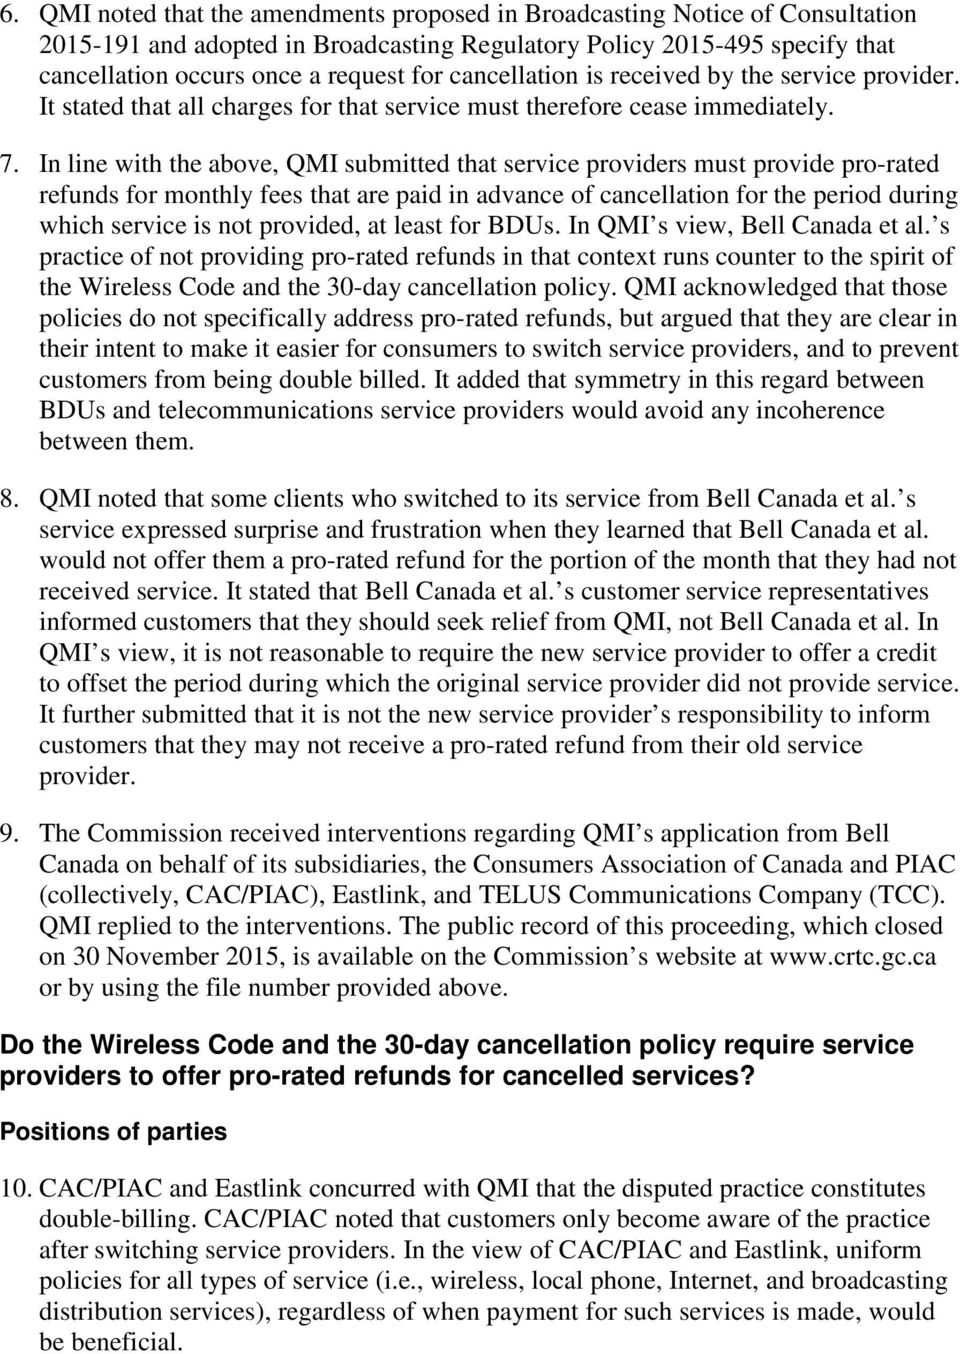 In line with the above, QMI submitted that service providers must provide pro-rated refunds for monthly fees that are paid in advance of cancellation for the period during which service is not